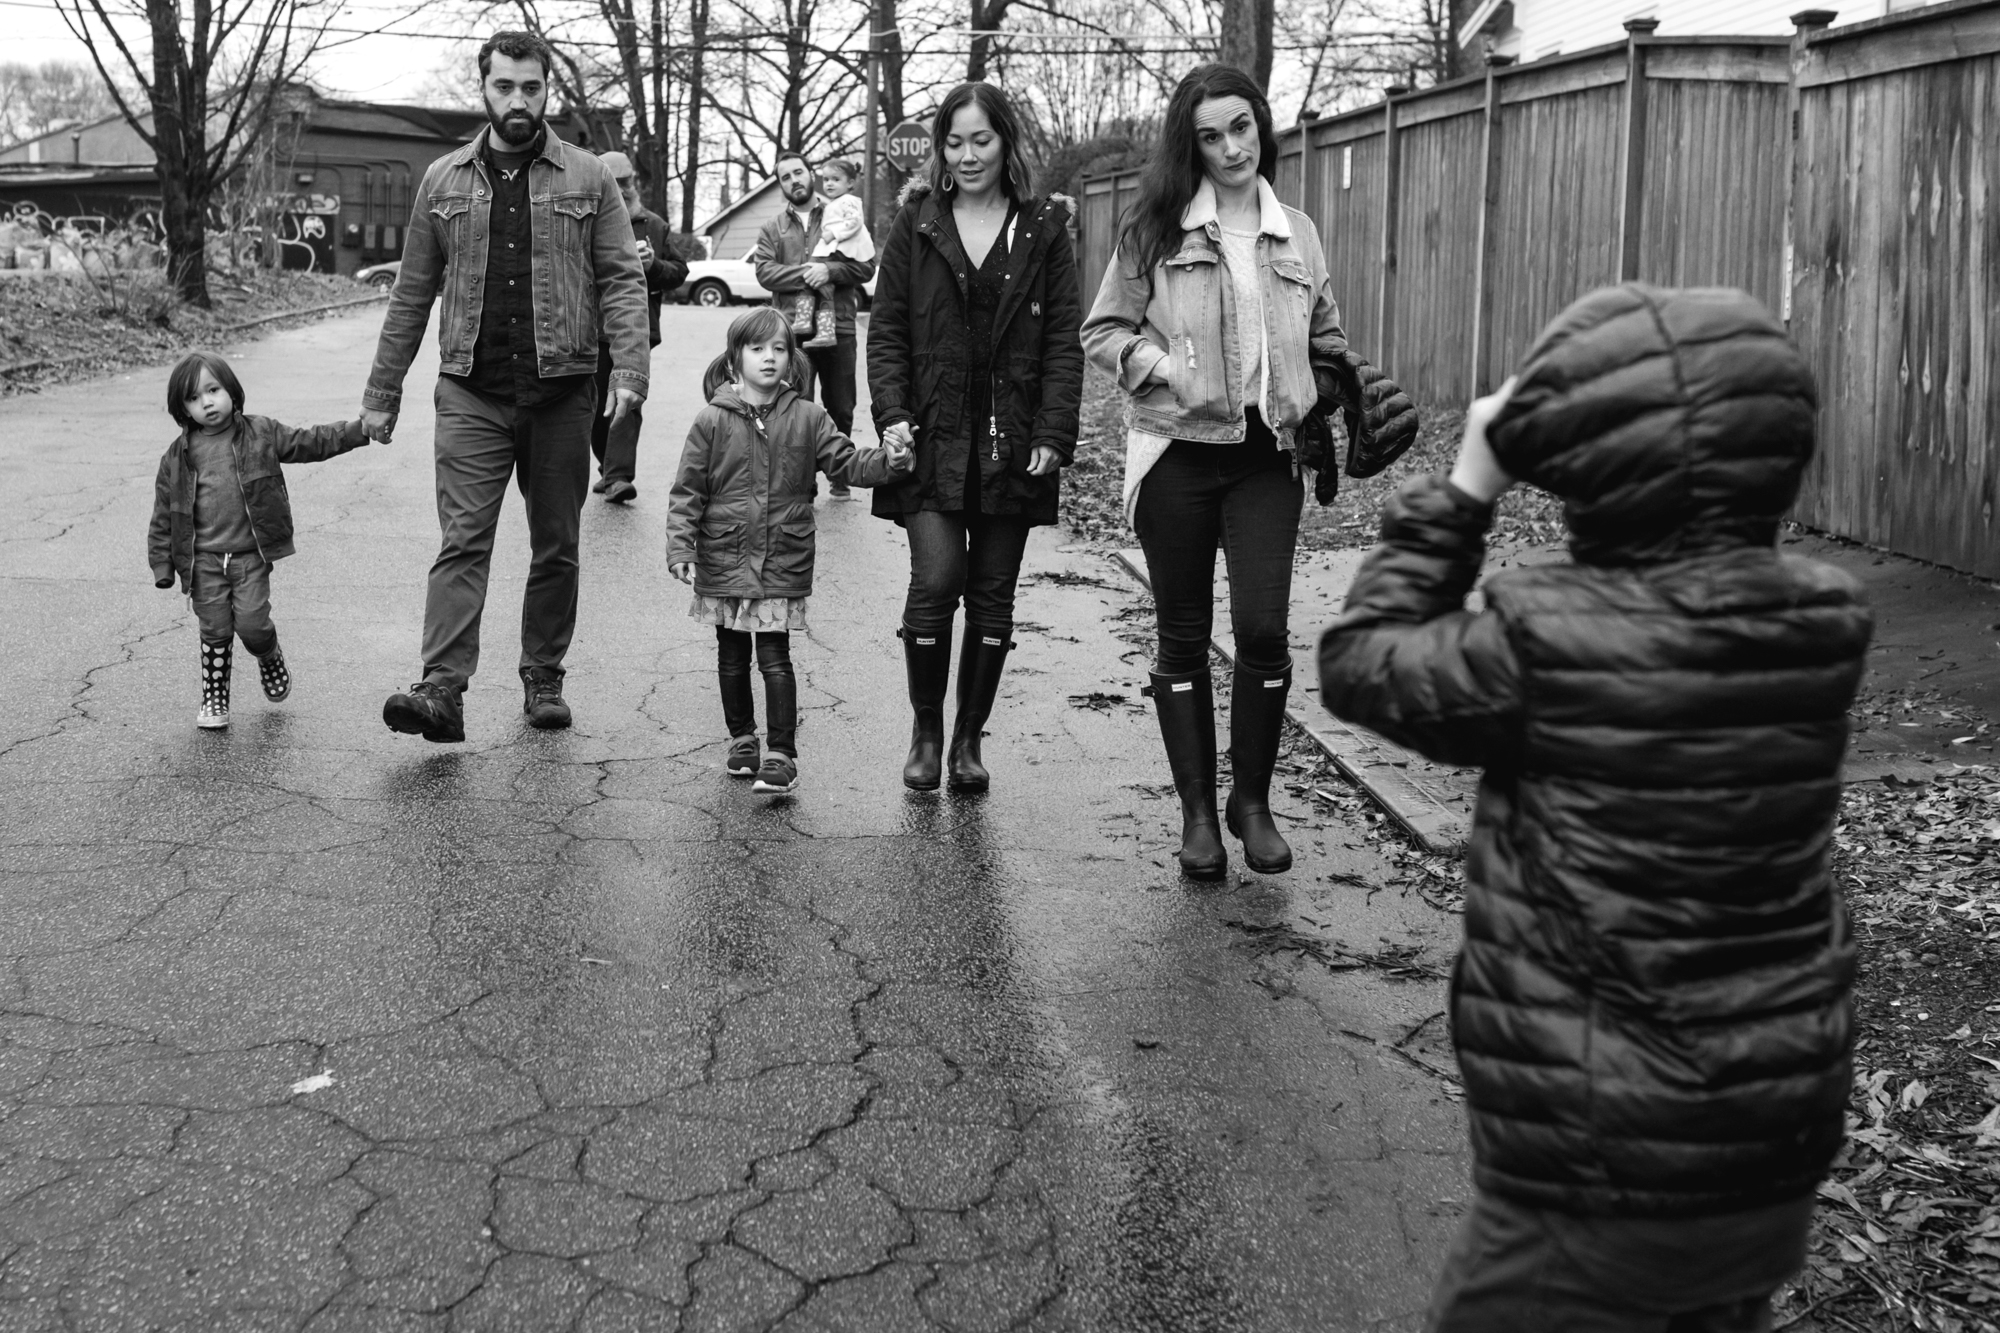 an extended family walks down the street as a mom gives her child who is turned around the mom look